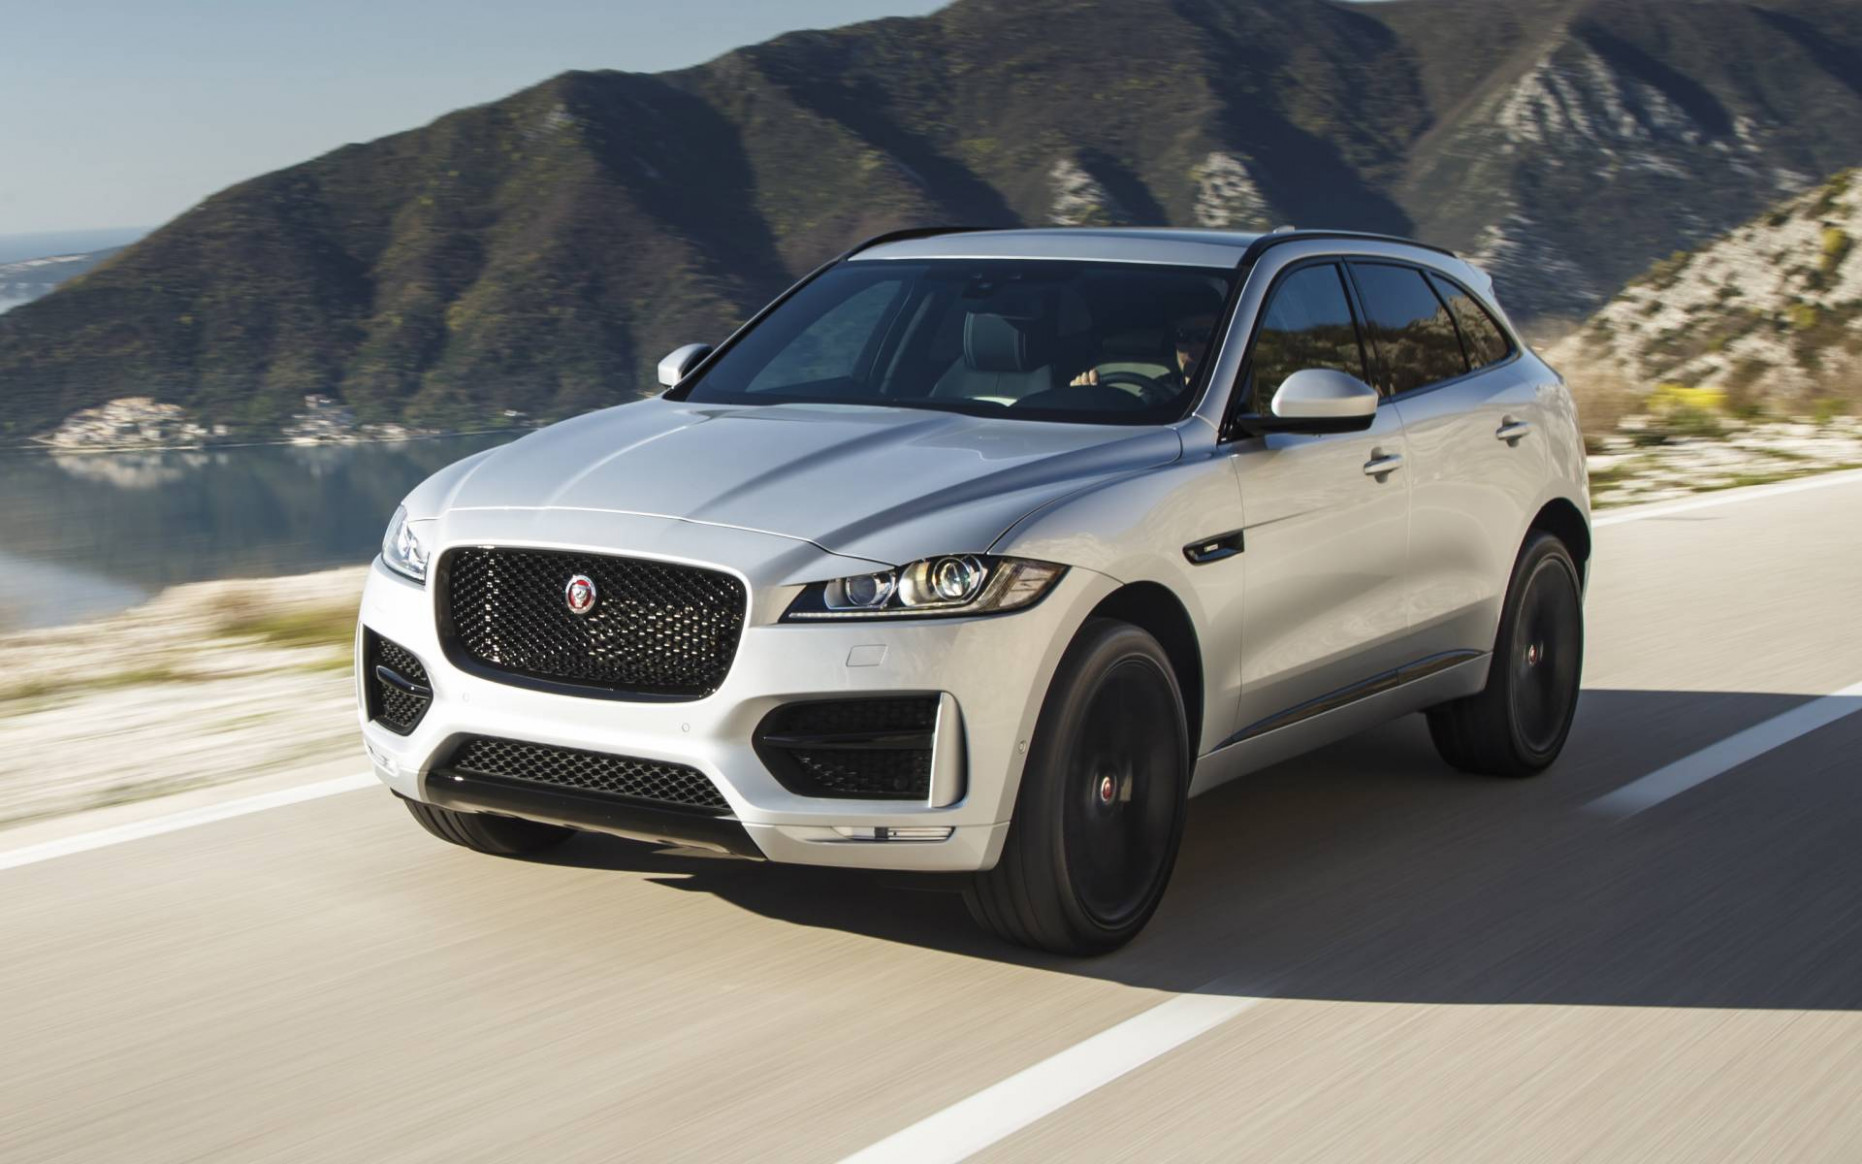 7 Jaguar F-PACE photos - 7/7 - The Car Guide